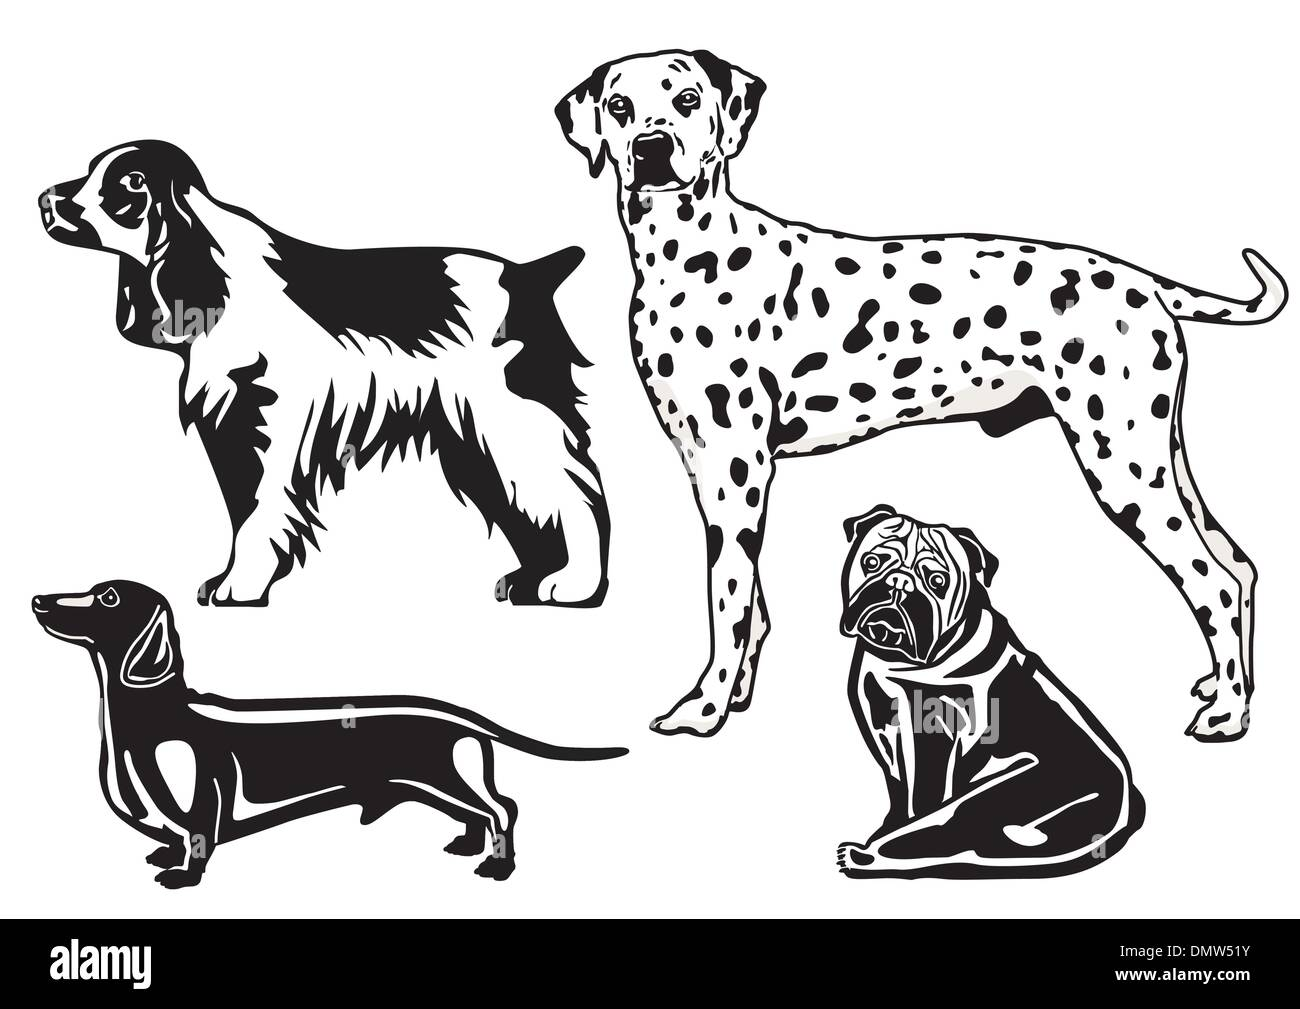 breeds of dogs - Stock Image